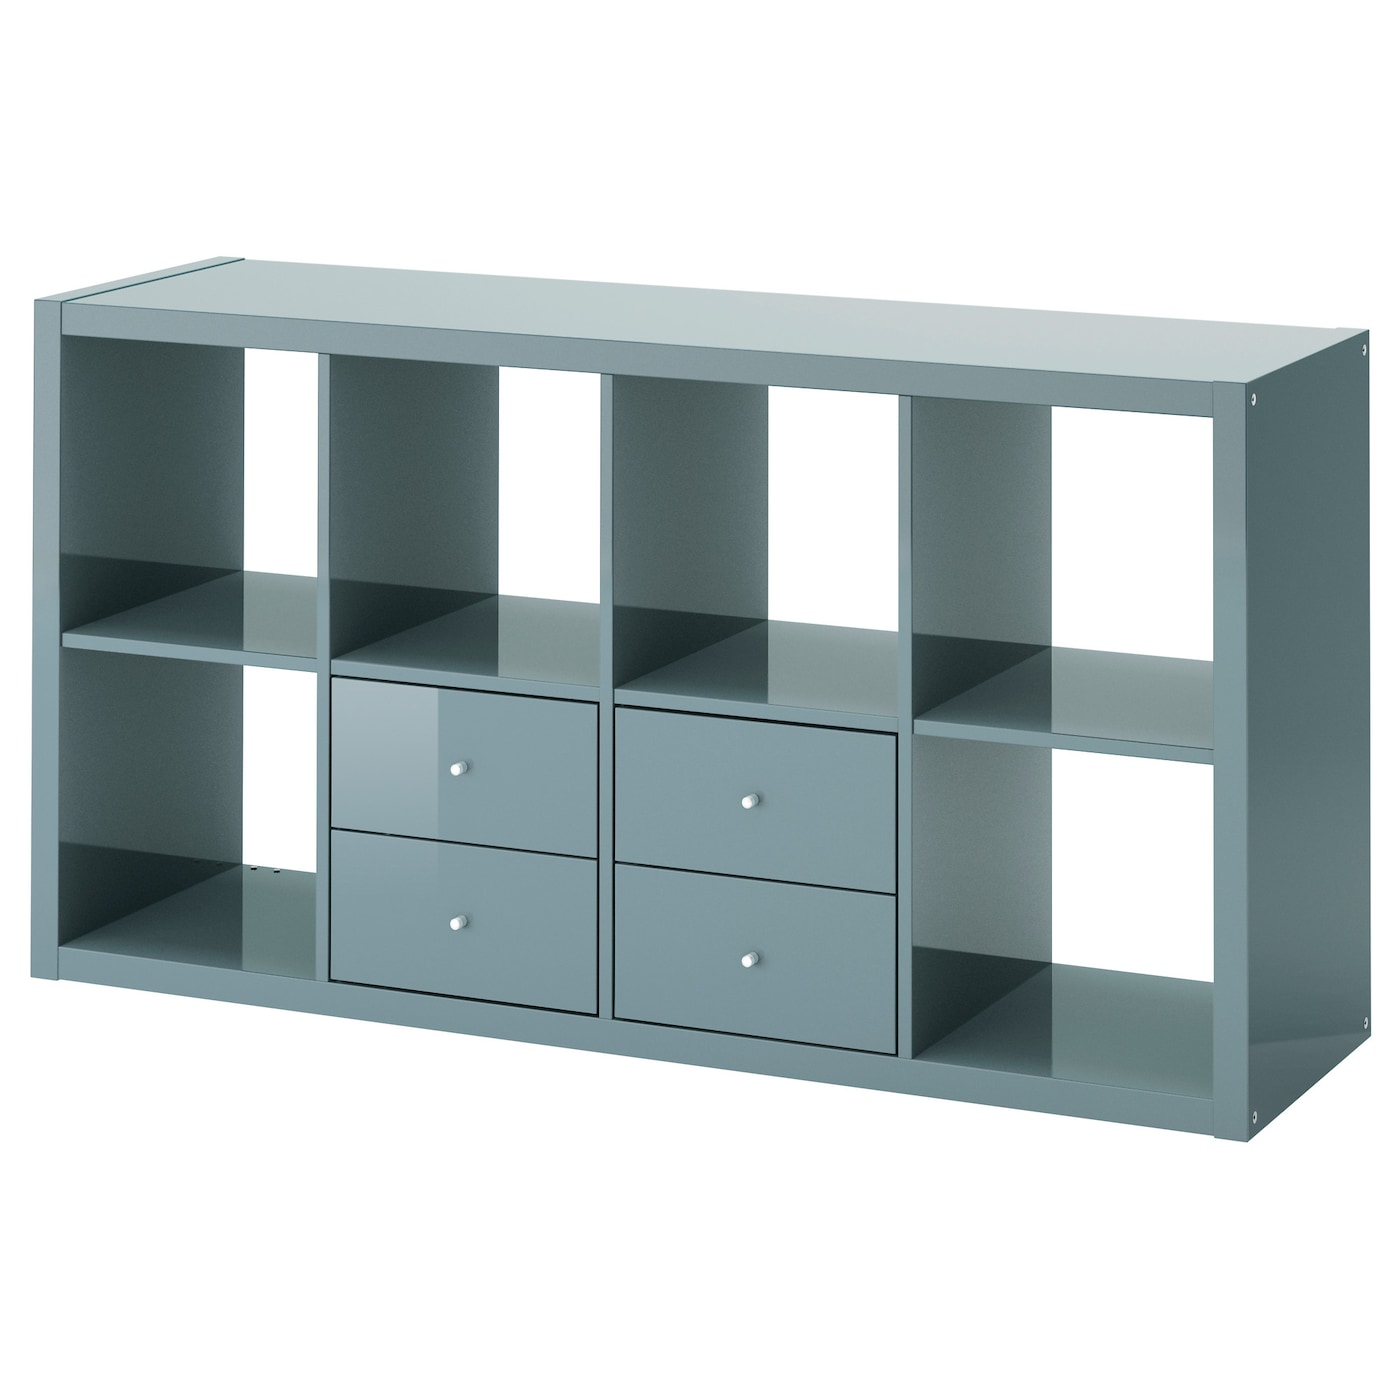 Kallax shelving unit with 2 inserts high gloss grey for Meuble 5 cases ikea